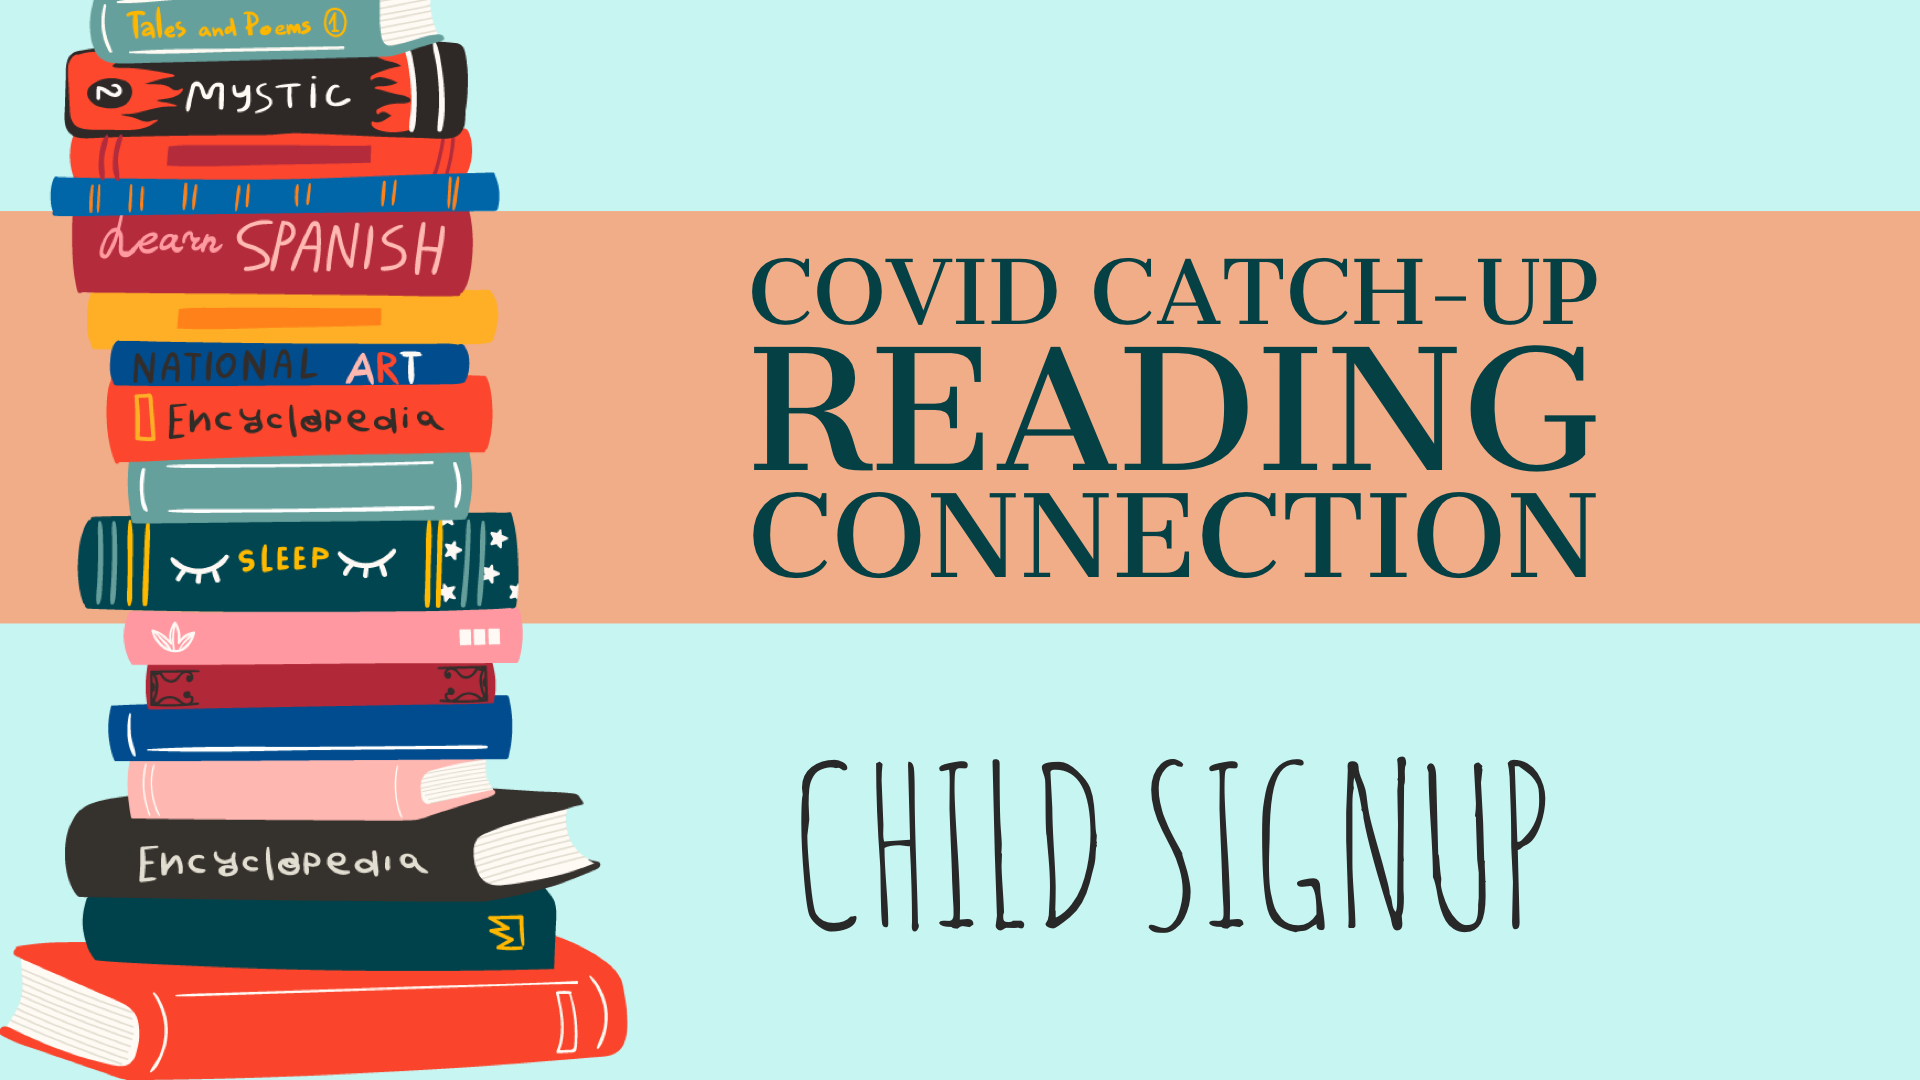 Covid Catch-Up Reading Connection - Child Form